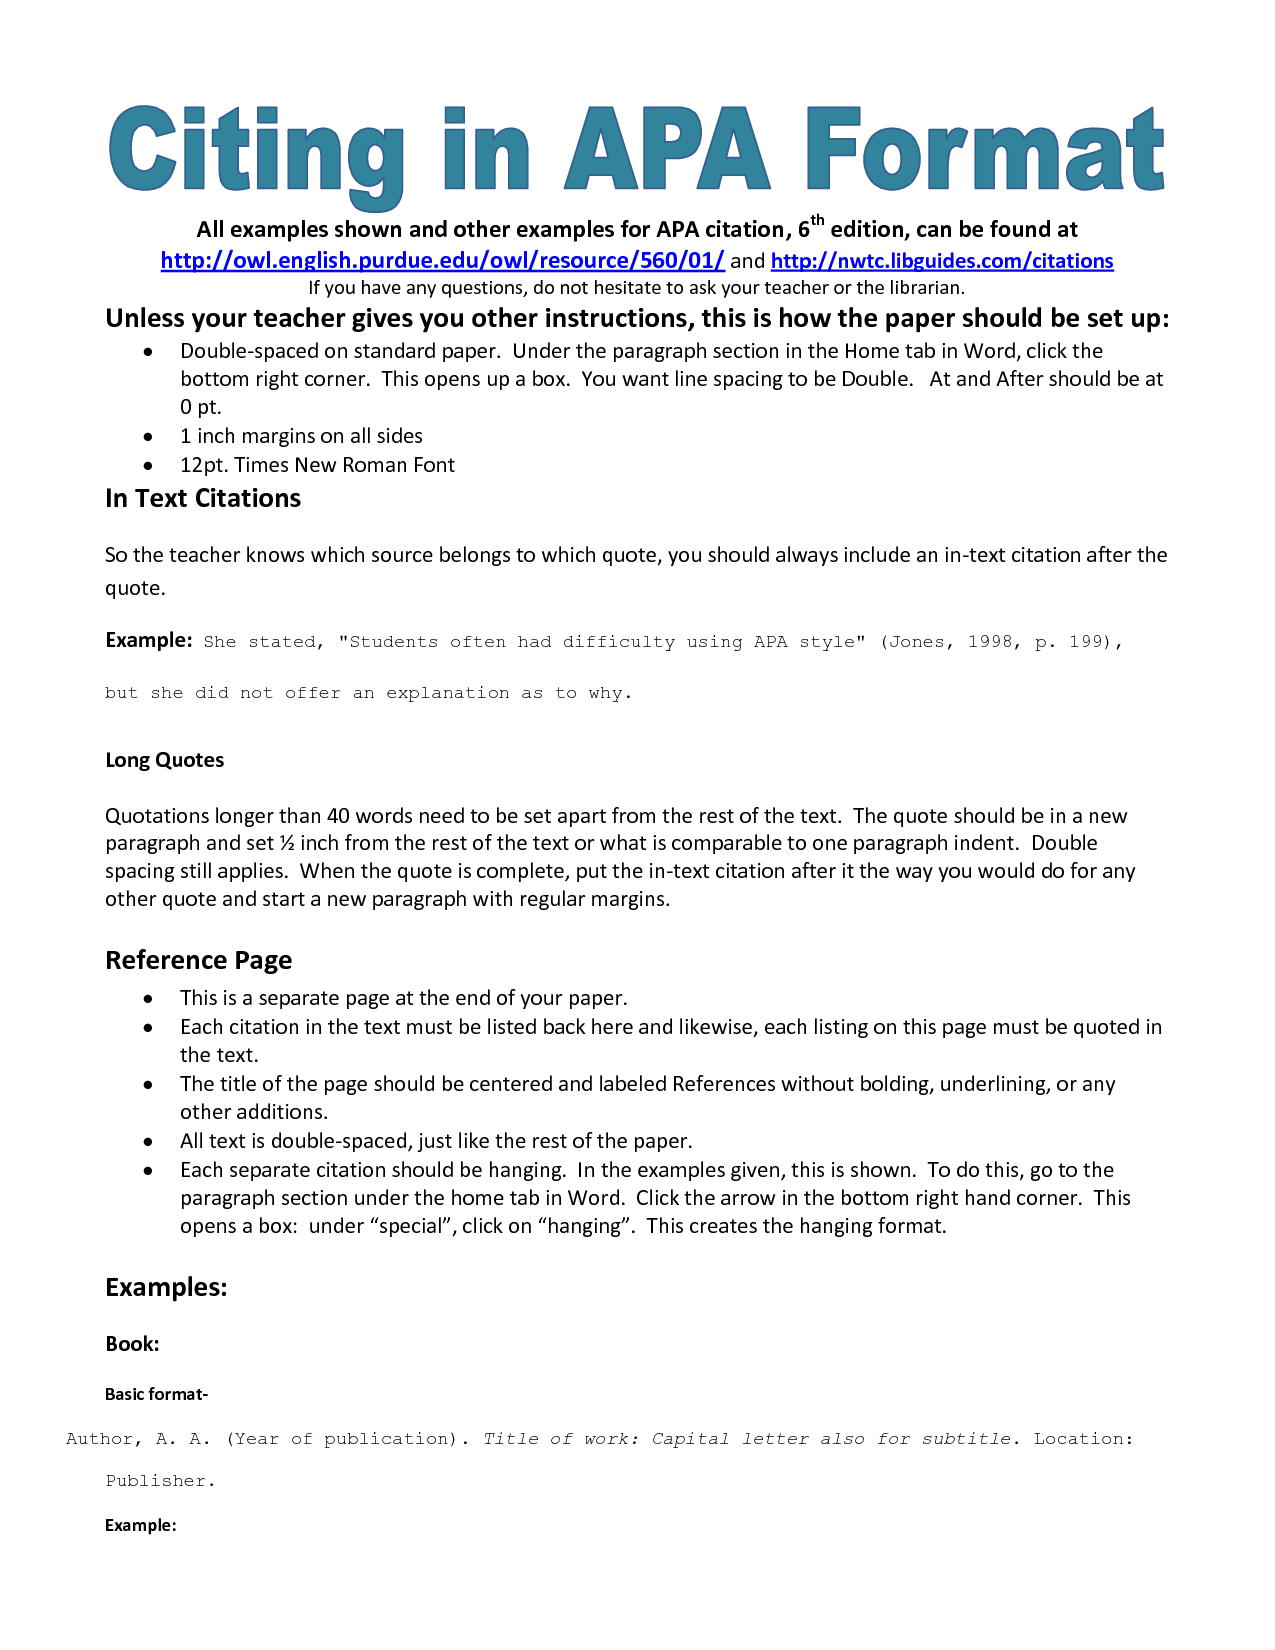 005 Essay Example How To Cite An In Wonderful Apa Online Research Paper Using Unpublished Conference Full